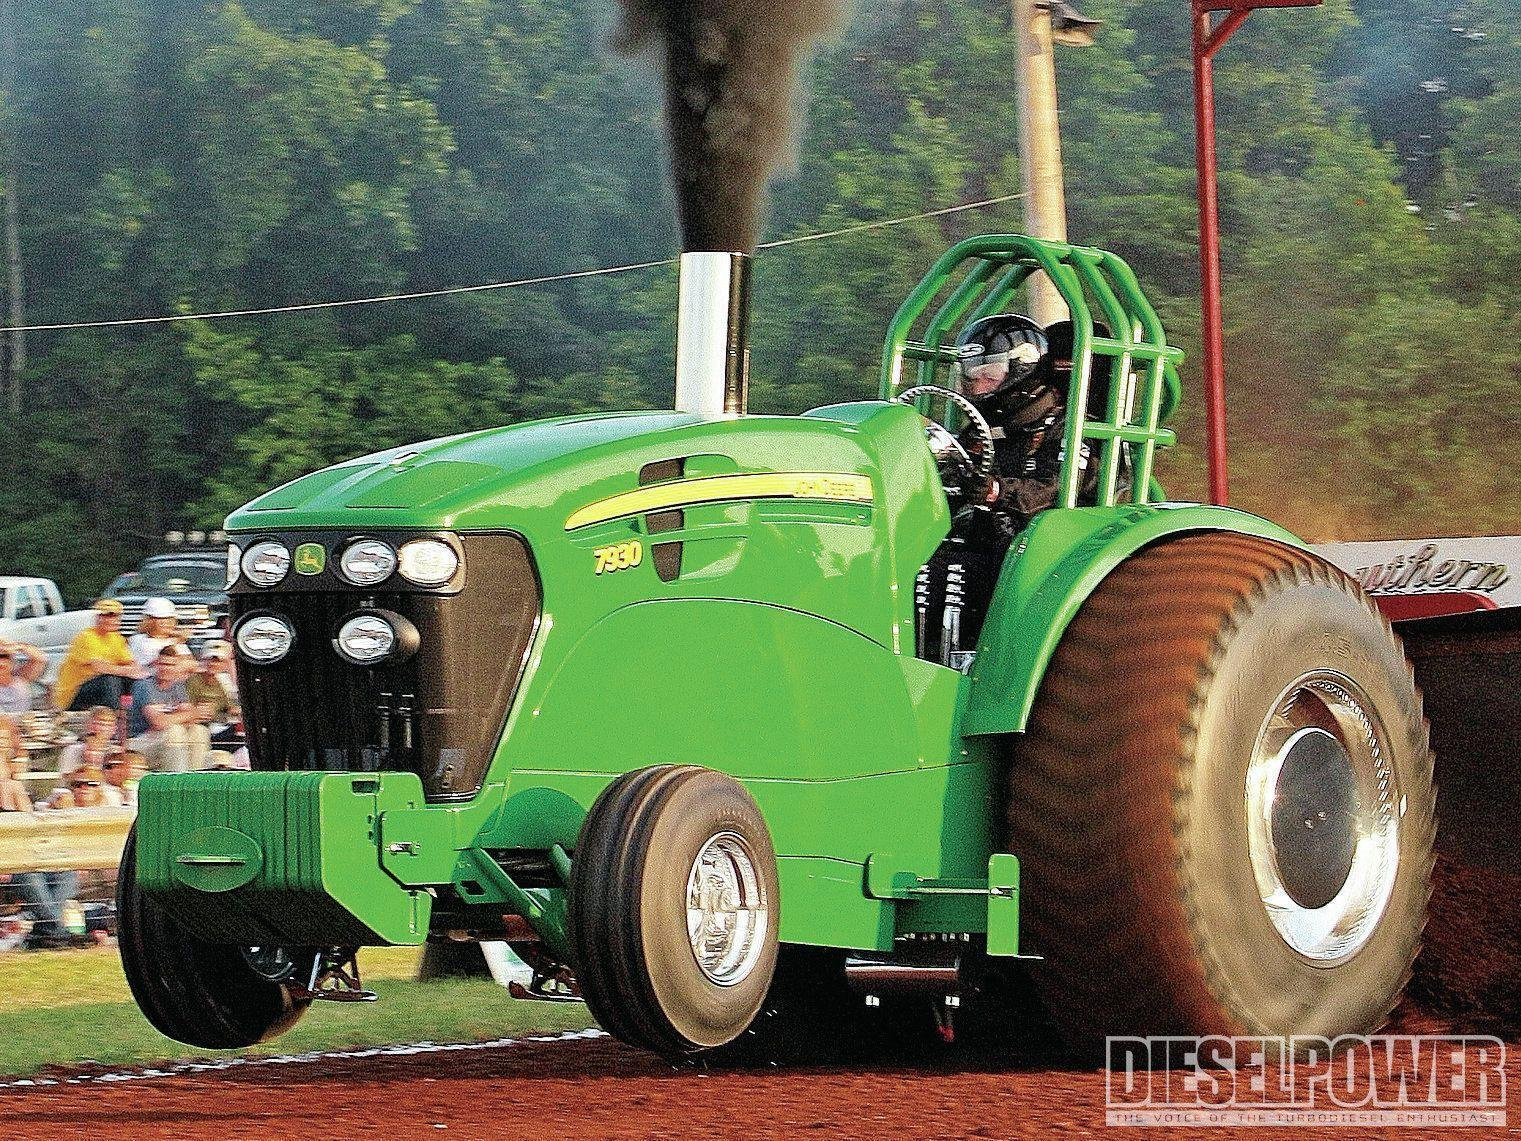 Peterbilt Vs. John Deere